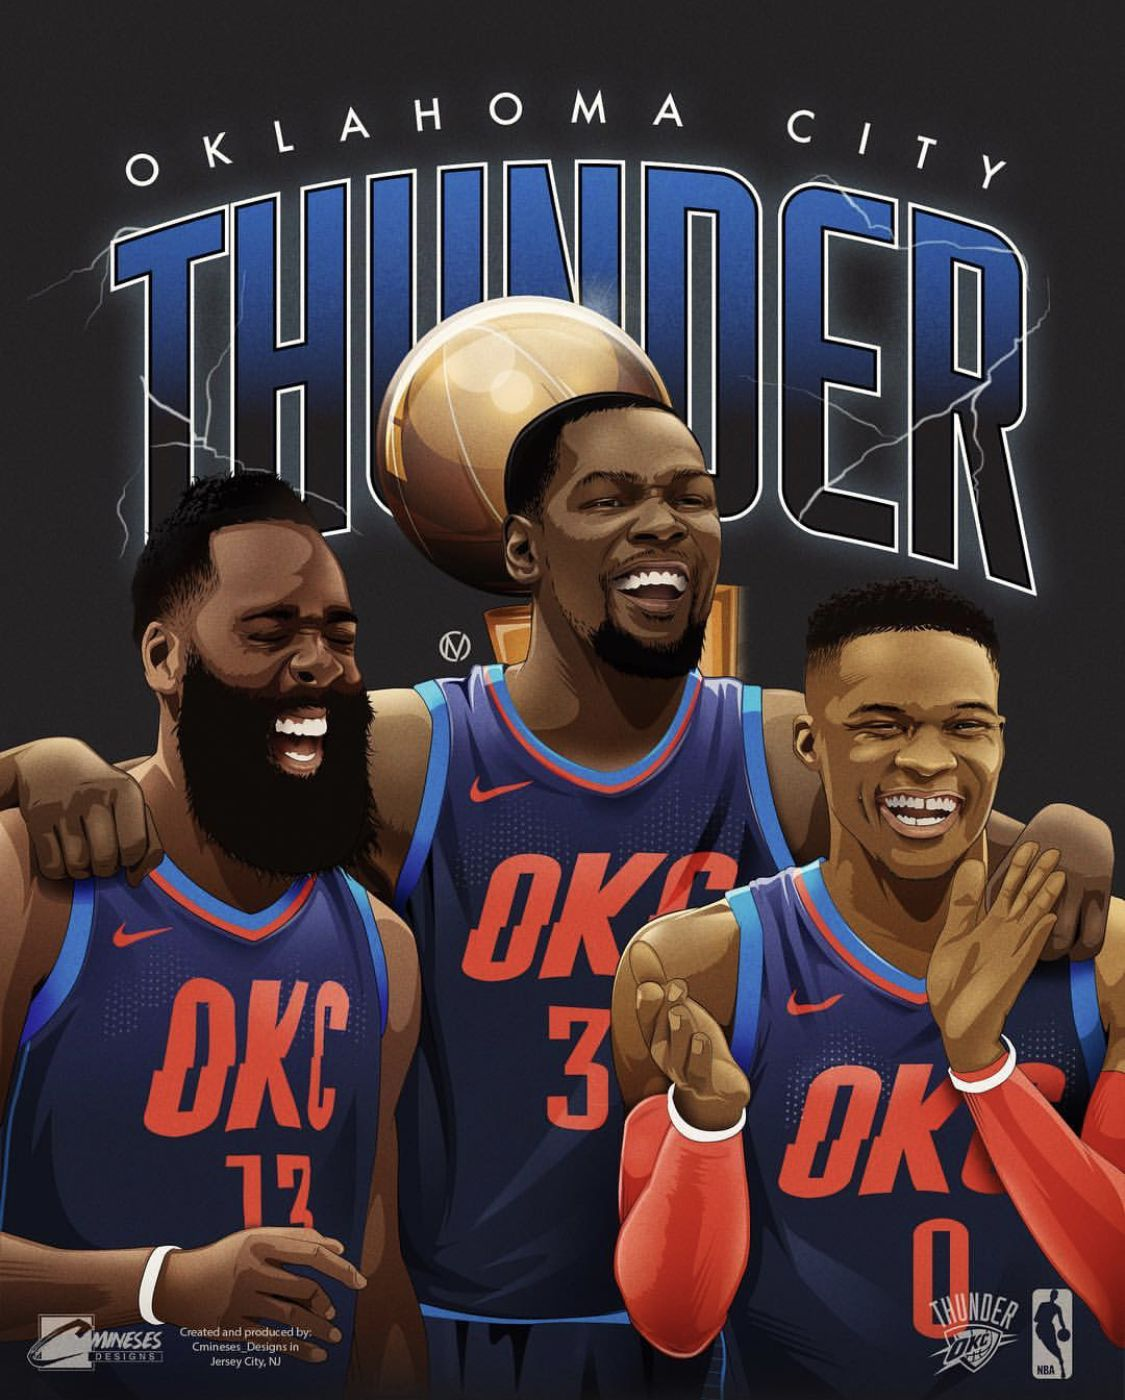 Okc Westbrook Harden Durant Nba Basketball Art Best Nba Players Basketball Players Nba